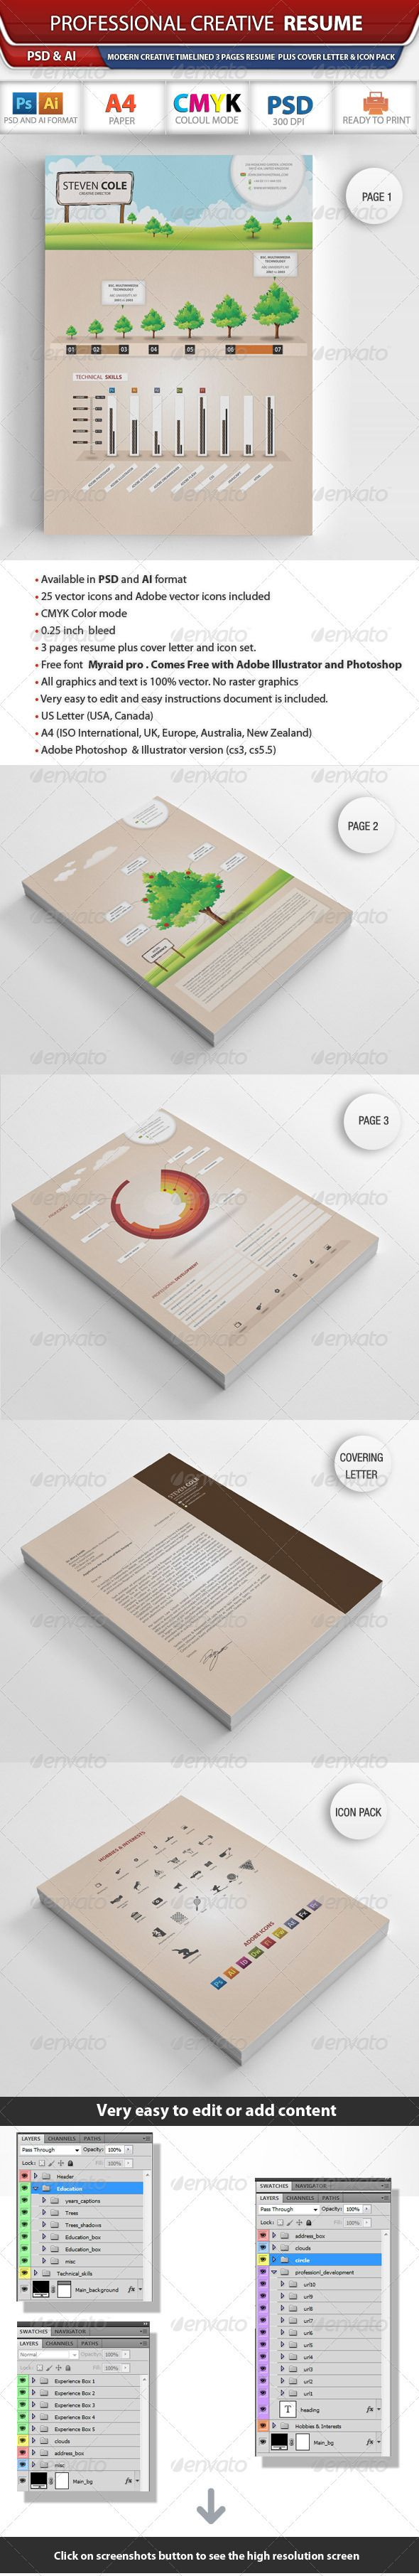 93 best creative cv images on pinterest creative resume design creative resume yelopaper